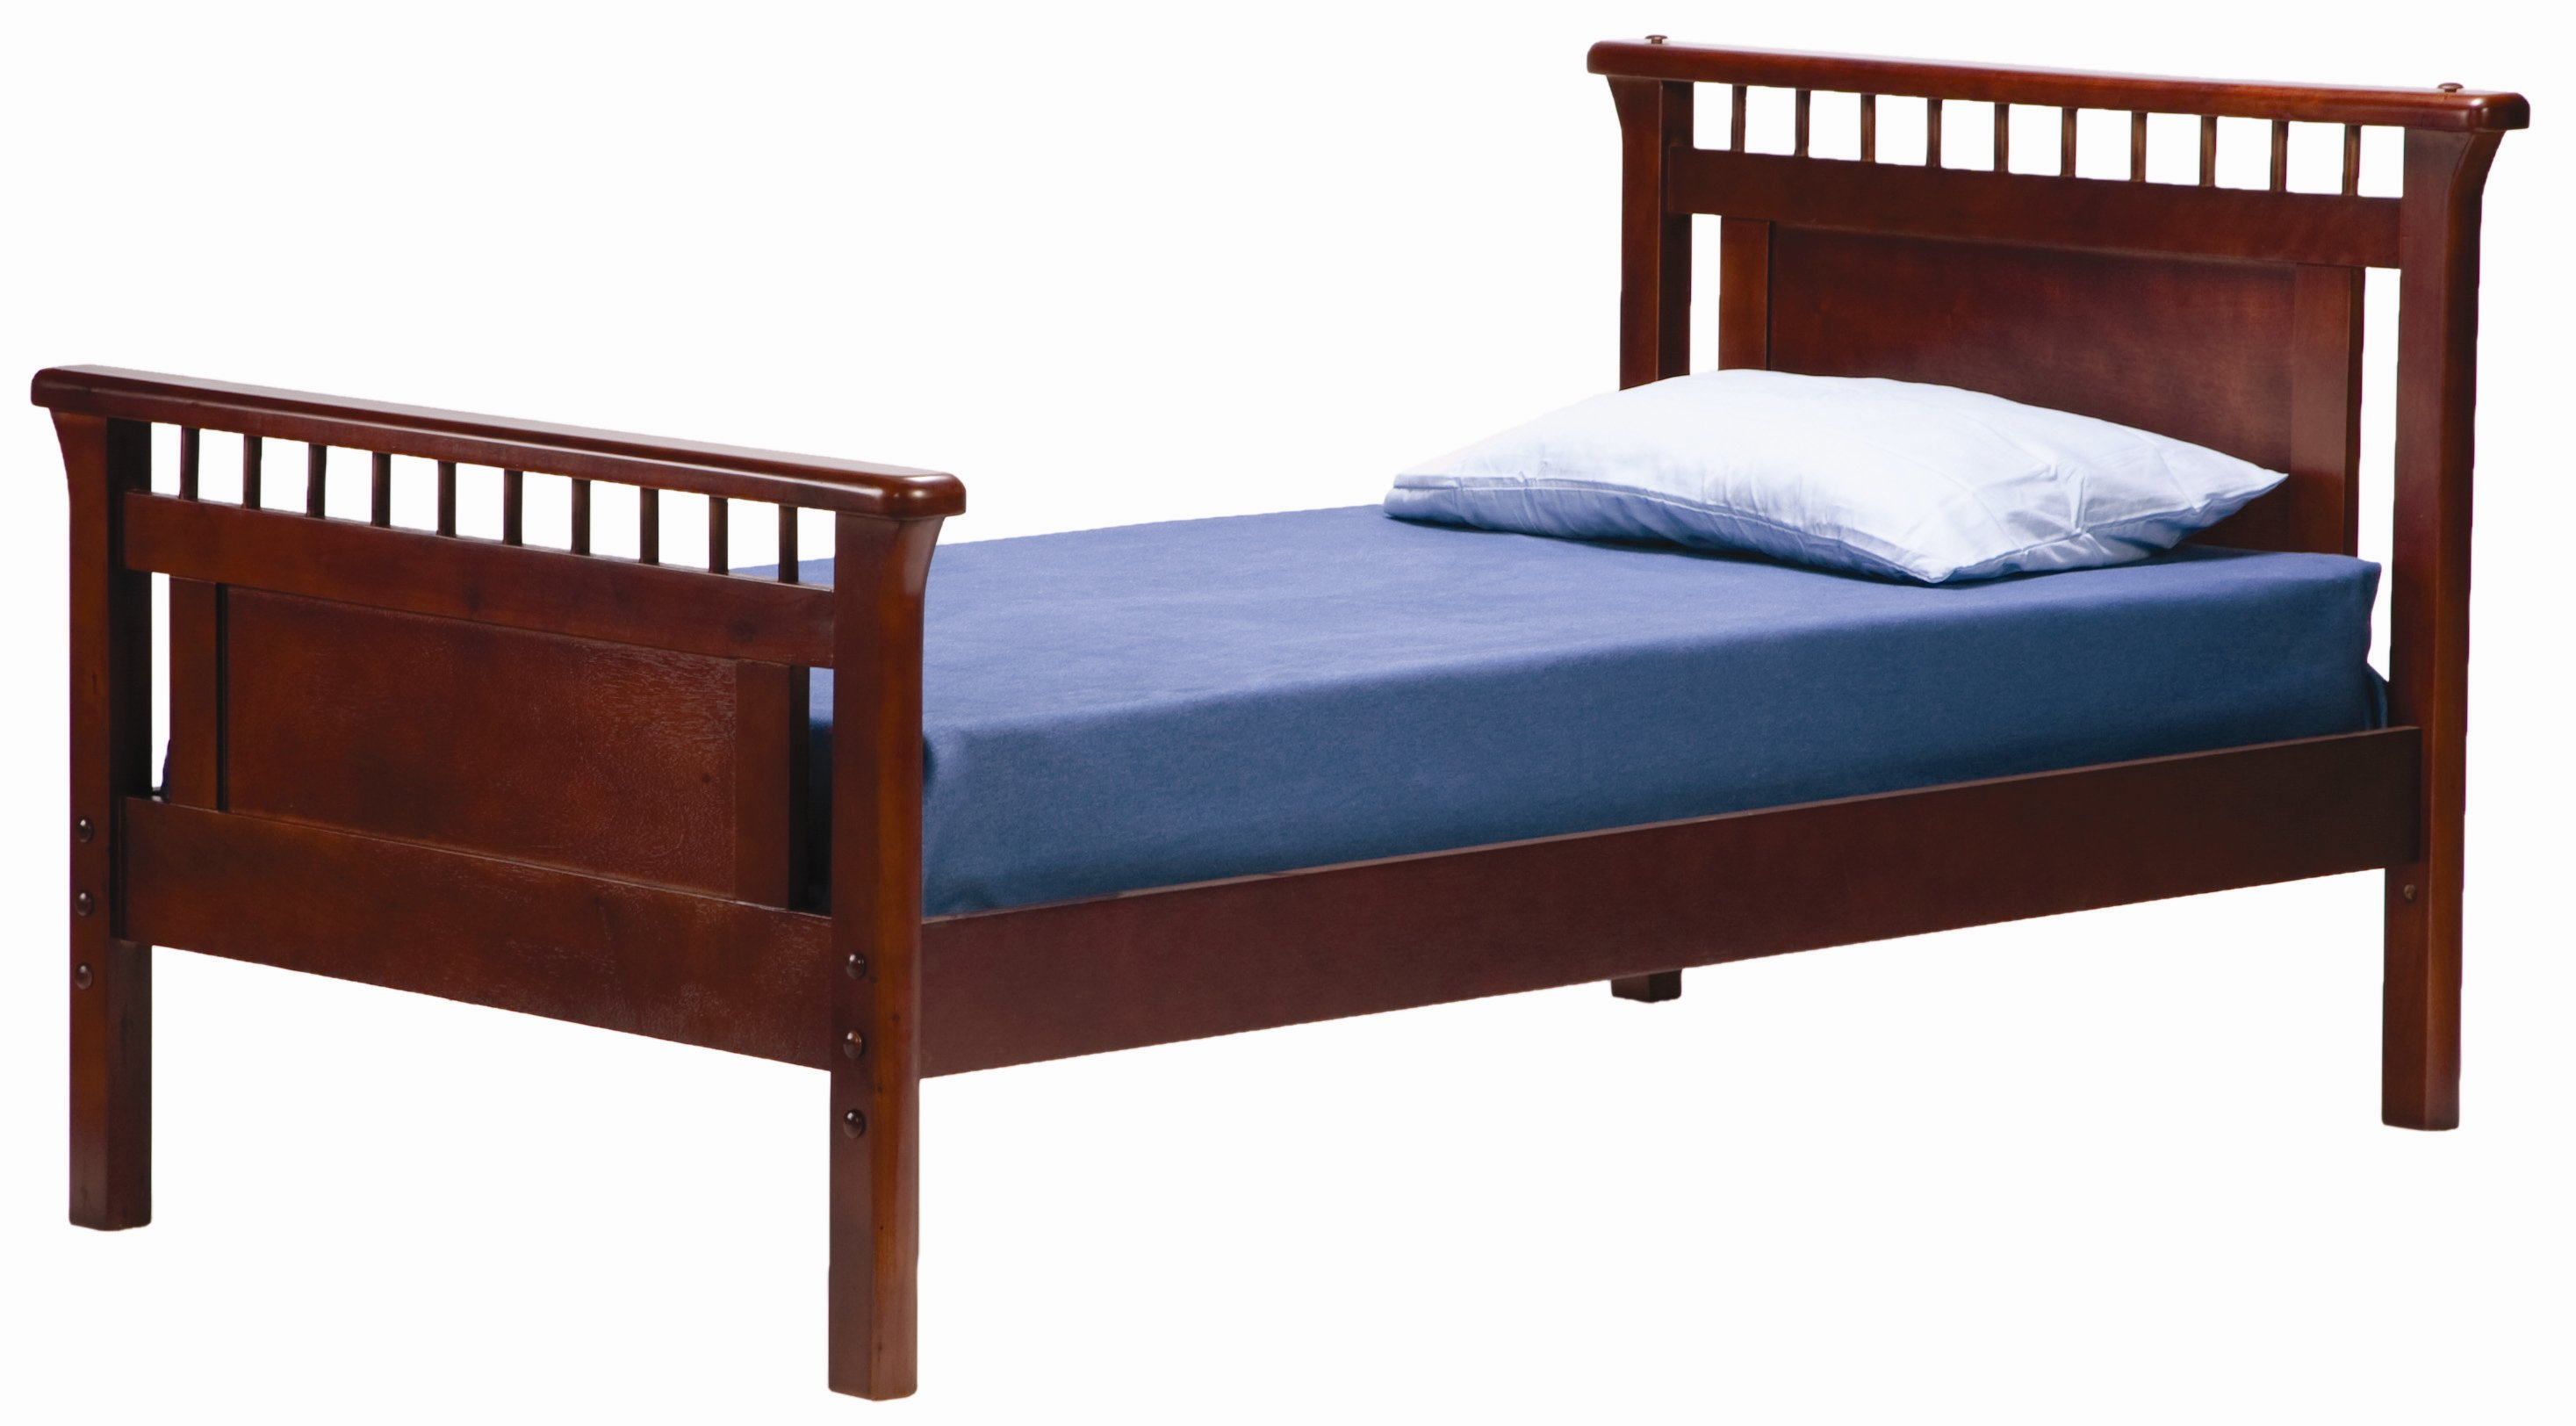 Bolton Bennington Bed In Cherry (Twin) by Overstock